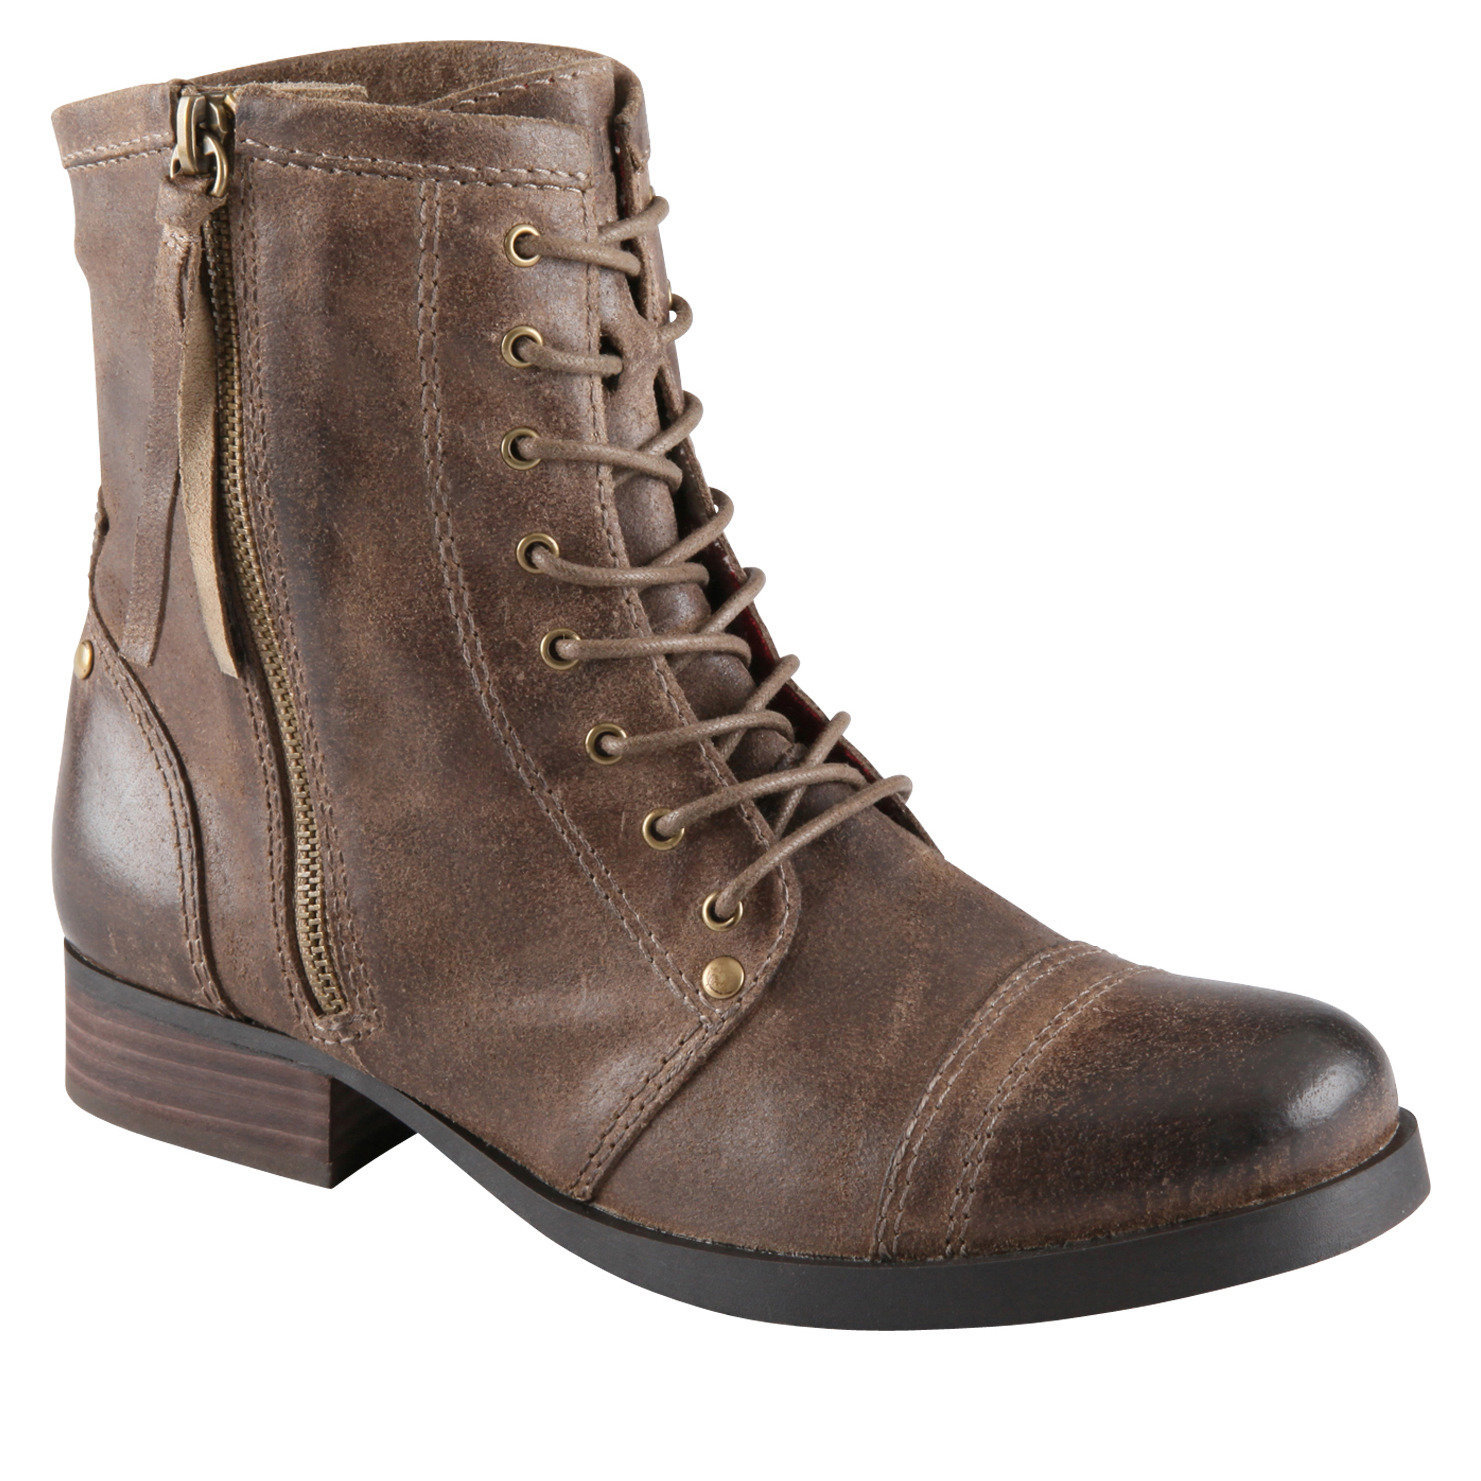 LOLA - Womenu0026#39;s Ankle Boots Boots For Sale From ALDO | Shoes